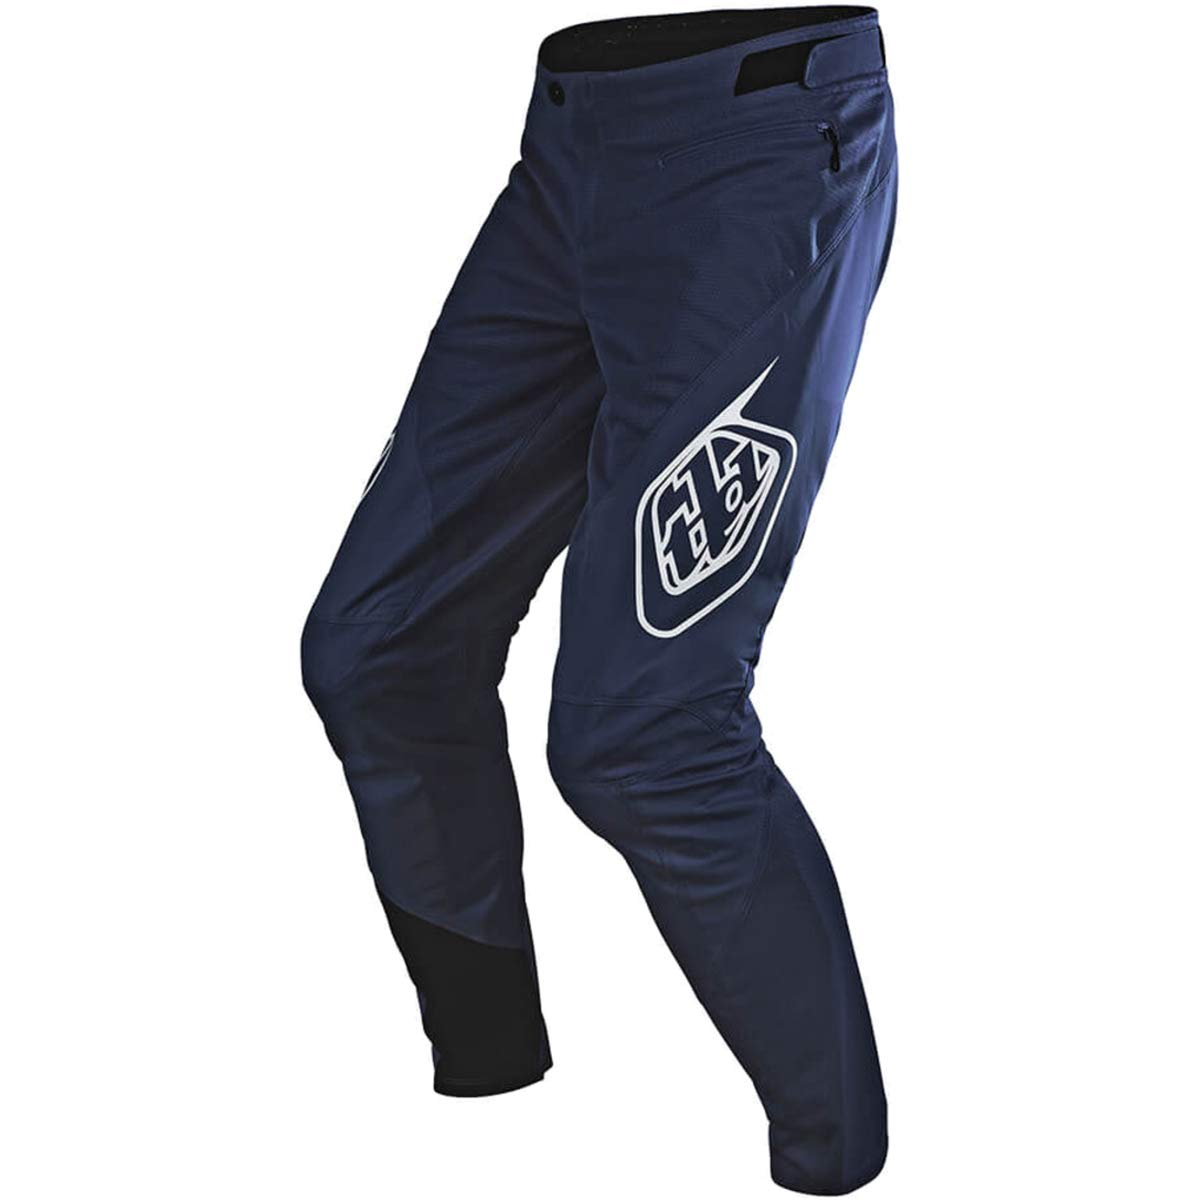 Troy Lee Designs Sprint Solid Youth Off-Road BMX Cycling Pants - Navy / 28 by Troy Lee Designs